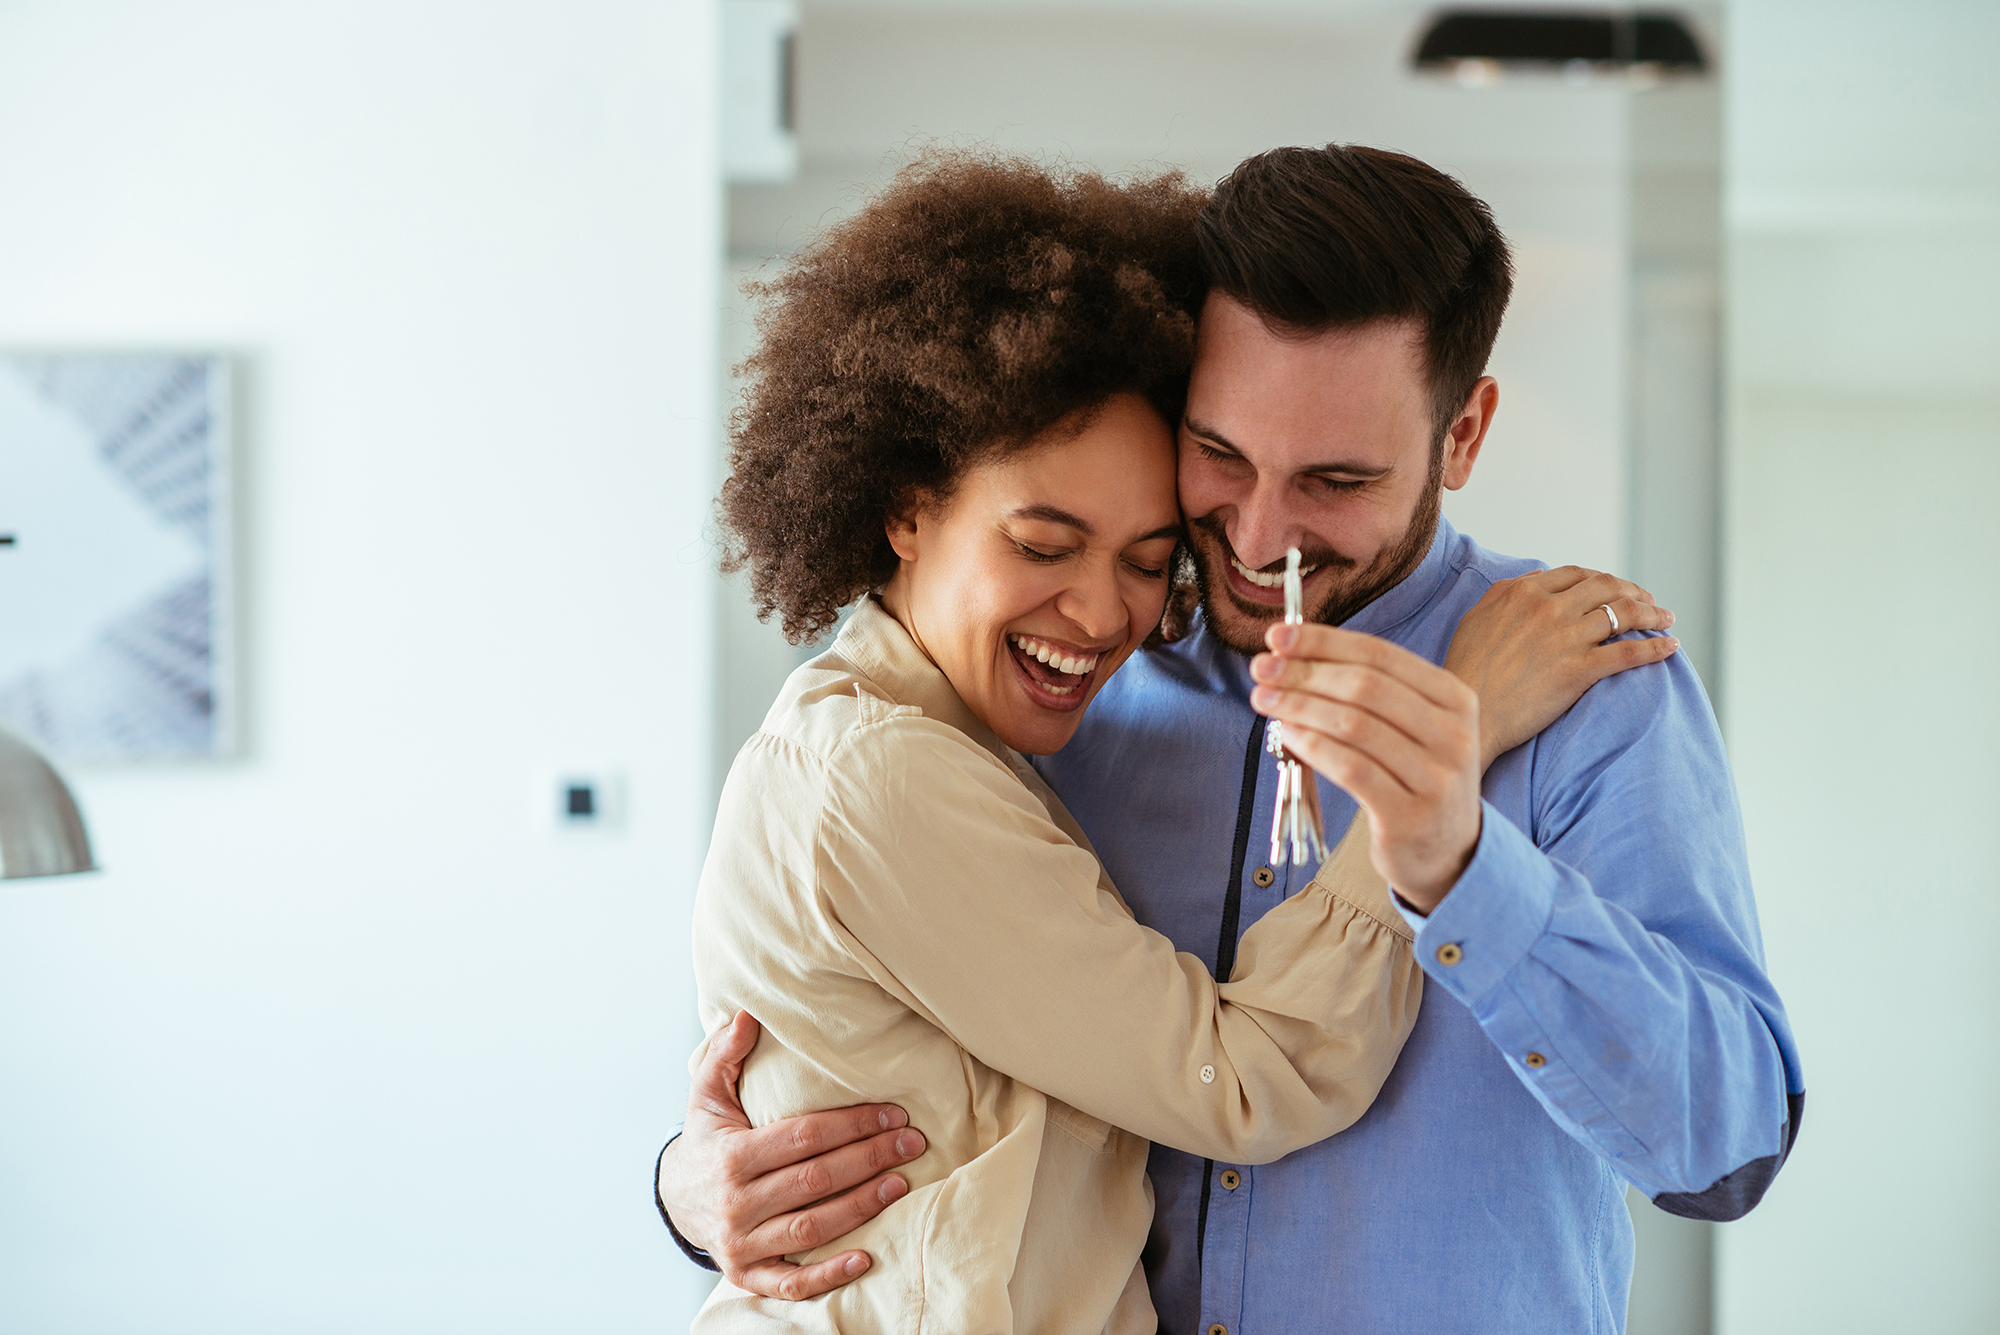 Happy couple with new house keys. (Image: Shutterstock)